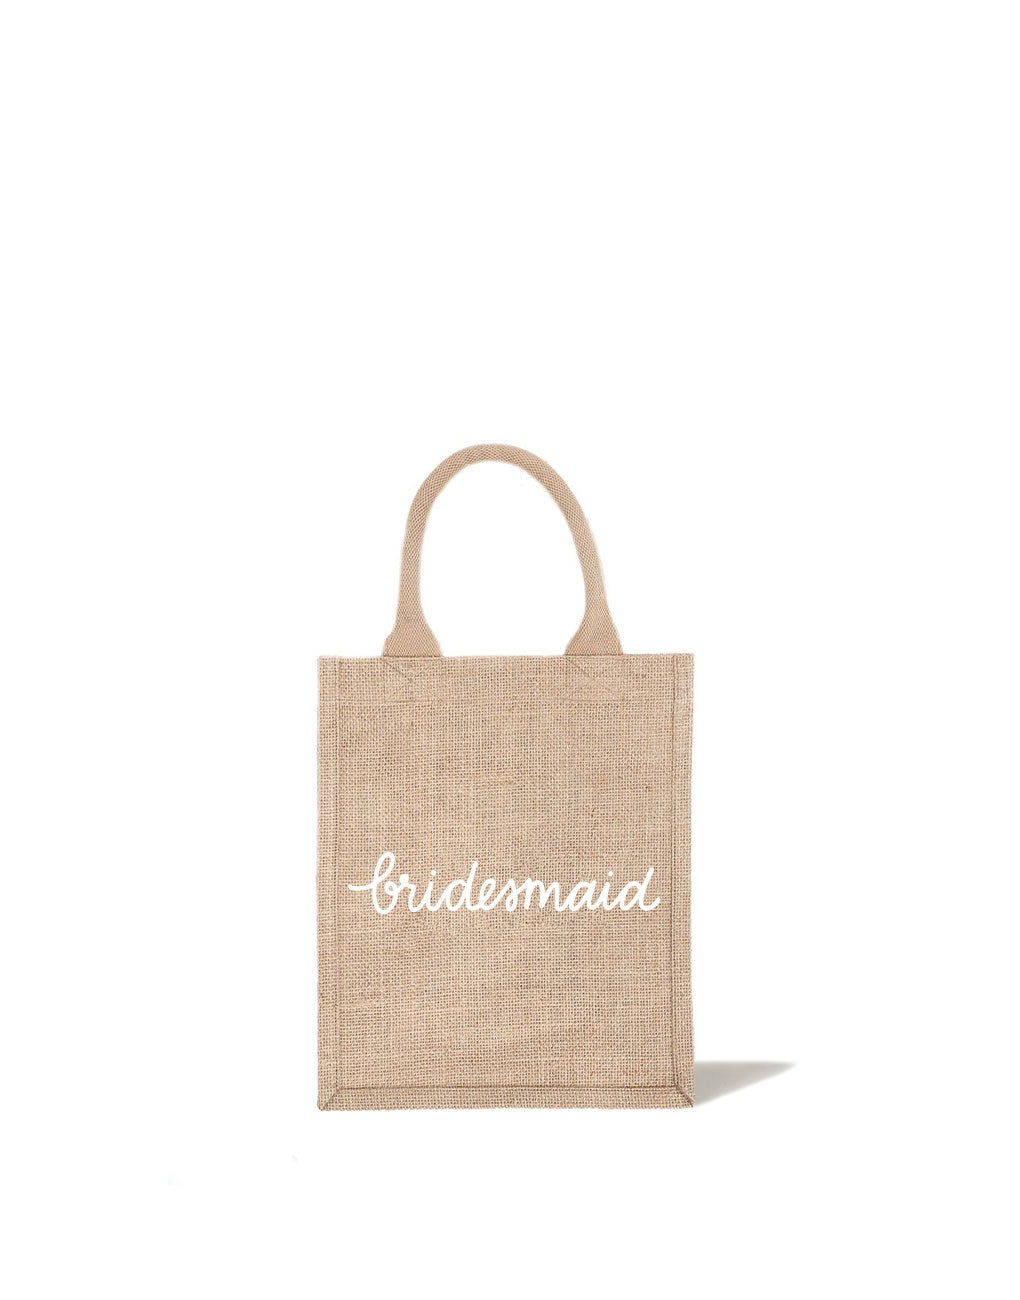 Bridesmaid Reusable Gift Tote In White Font | The Little Market